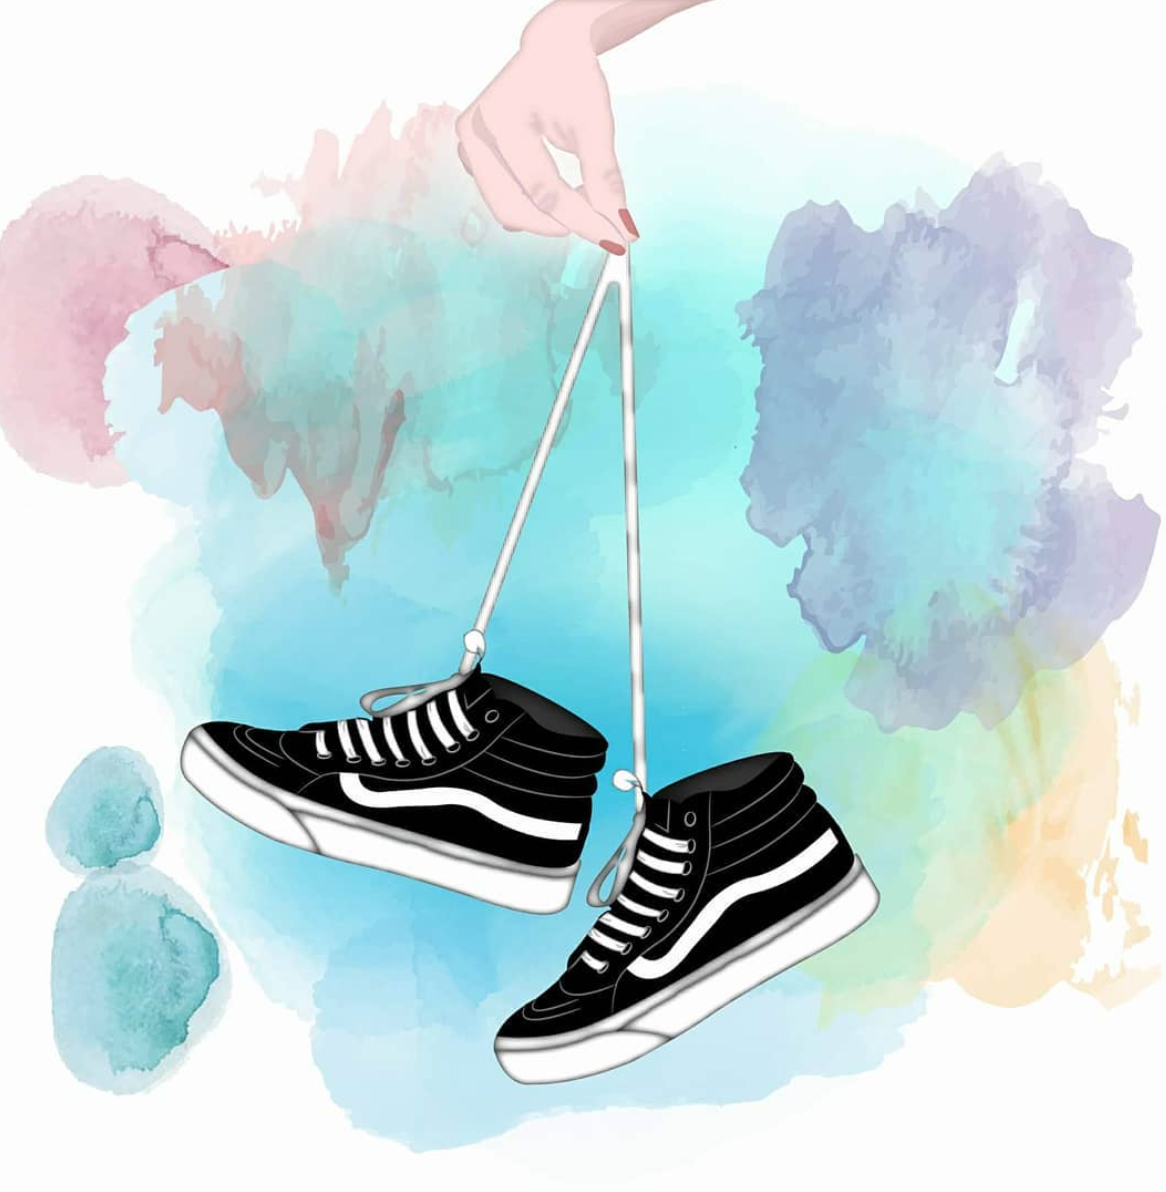 Your Weekly Art Fix By Mm Illustration With Images Sneakers Illustration Iphone Wallpaper Vans Vans Girls